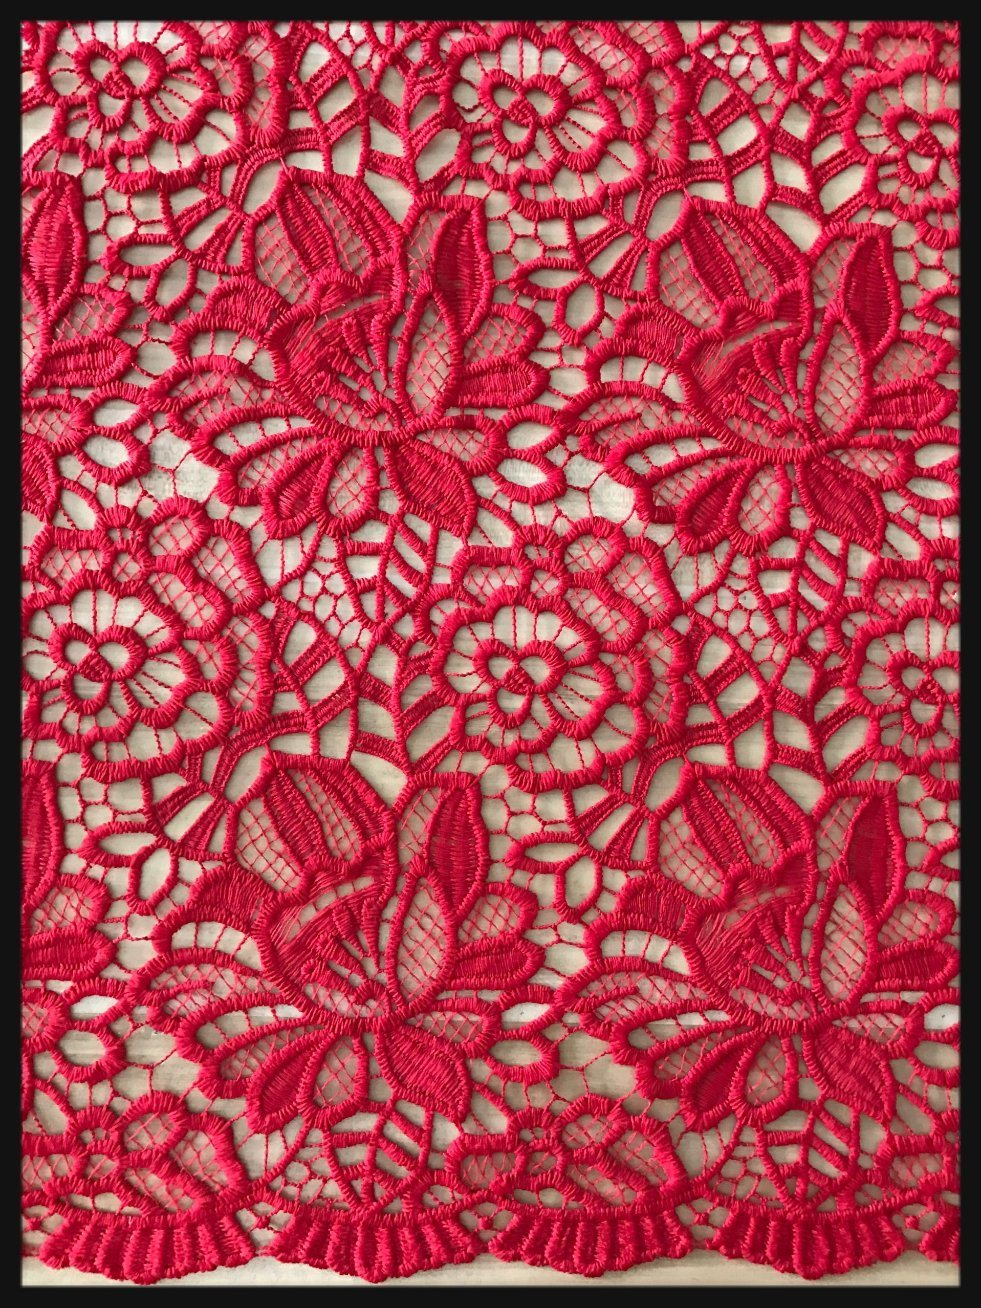 Flower Embroidered Lace Guipure Lace Chemical Guipure Lace